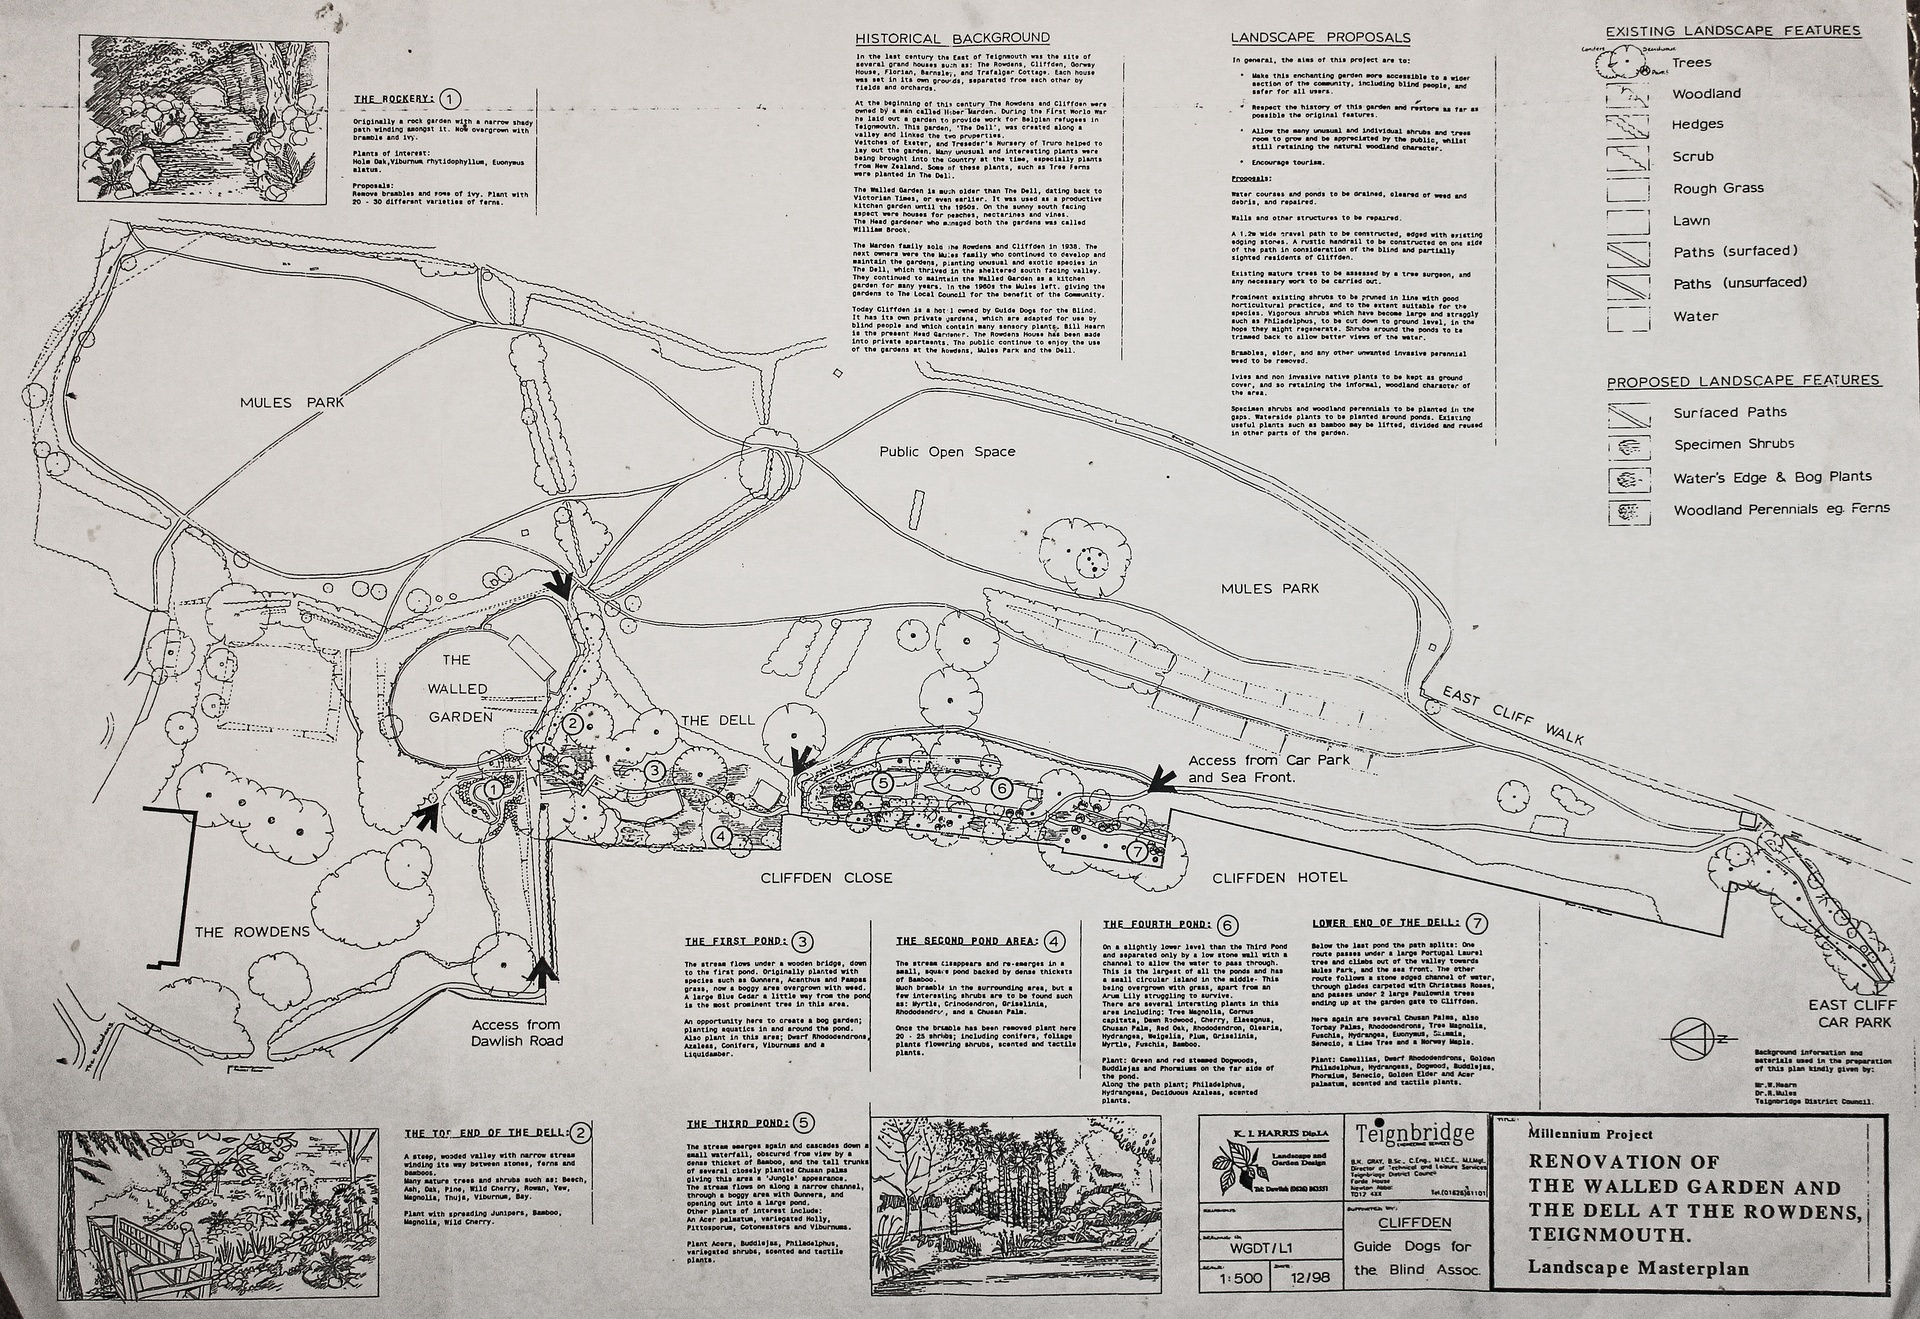 history of eastcliff park mules park teignmouth from 1786